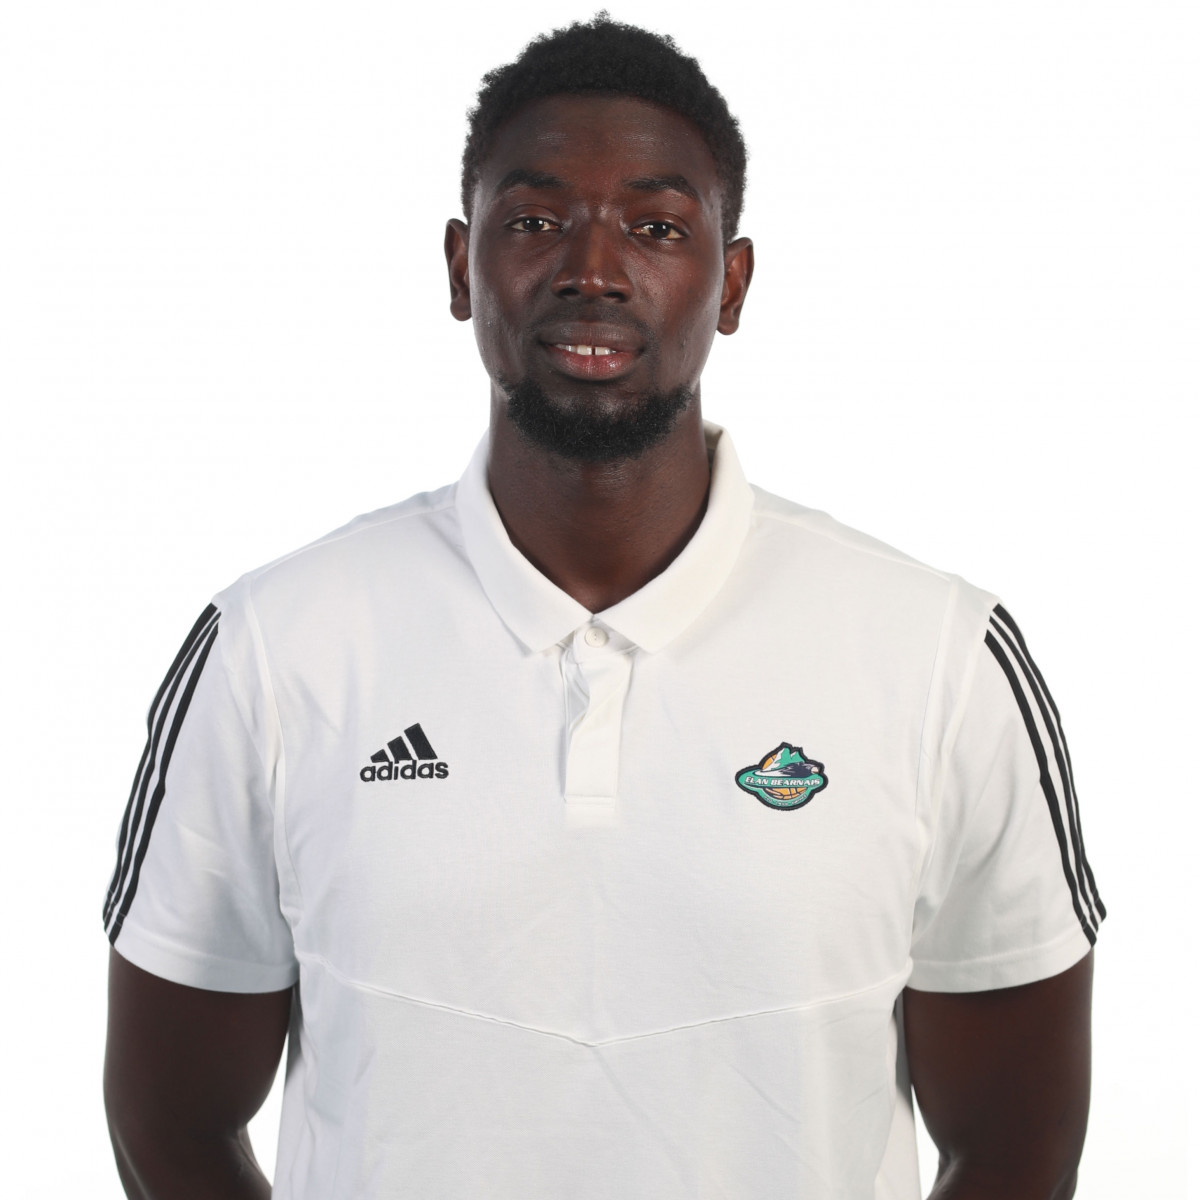 Photo of Cheikh Mbodj, 2019-2020 season